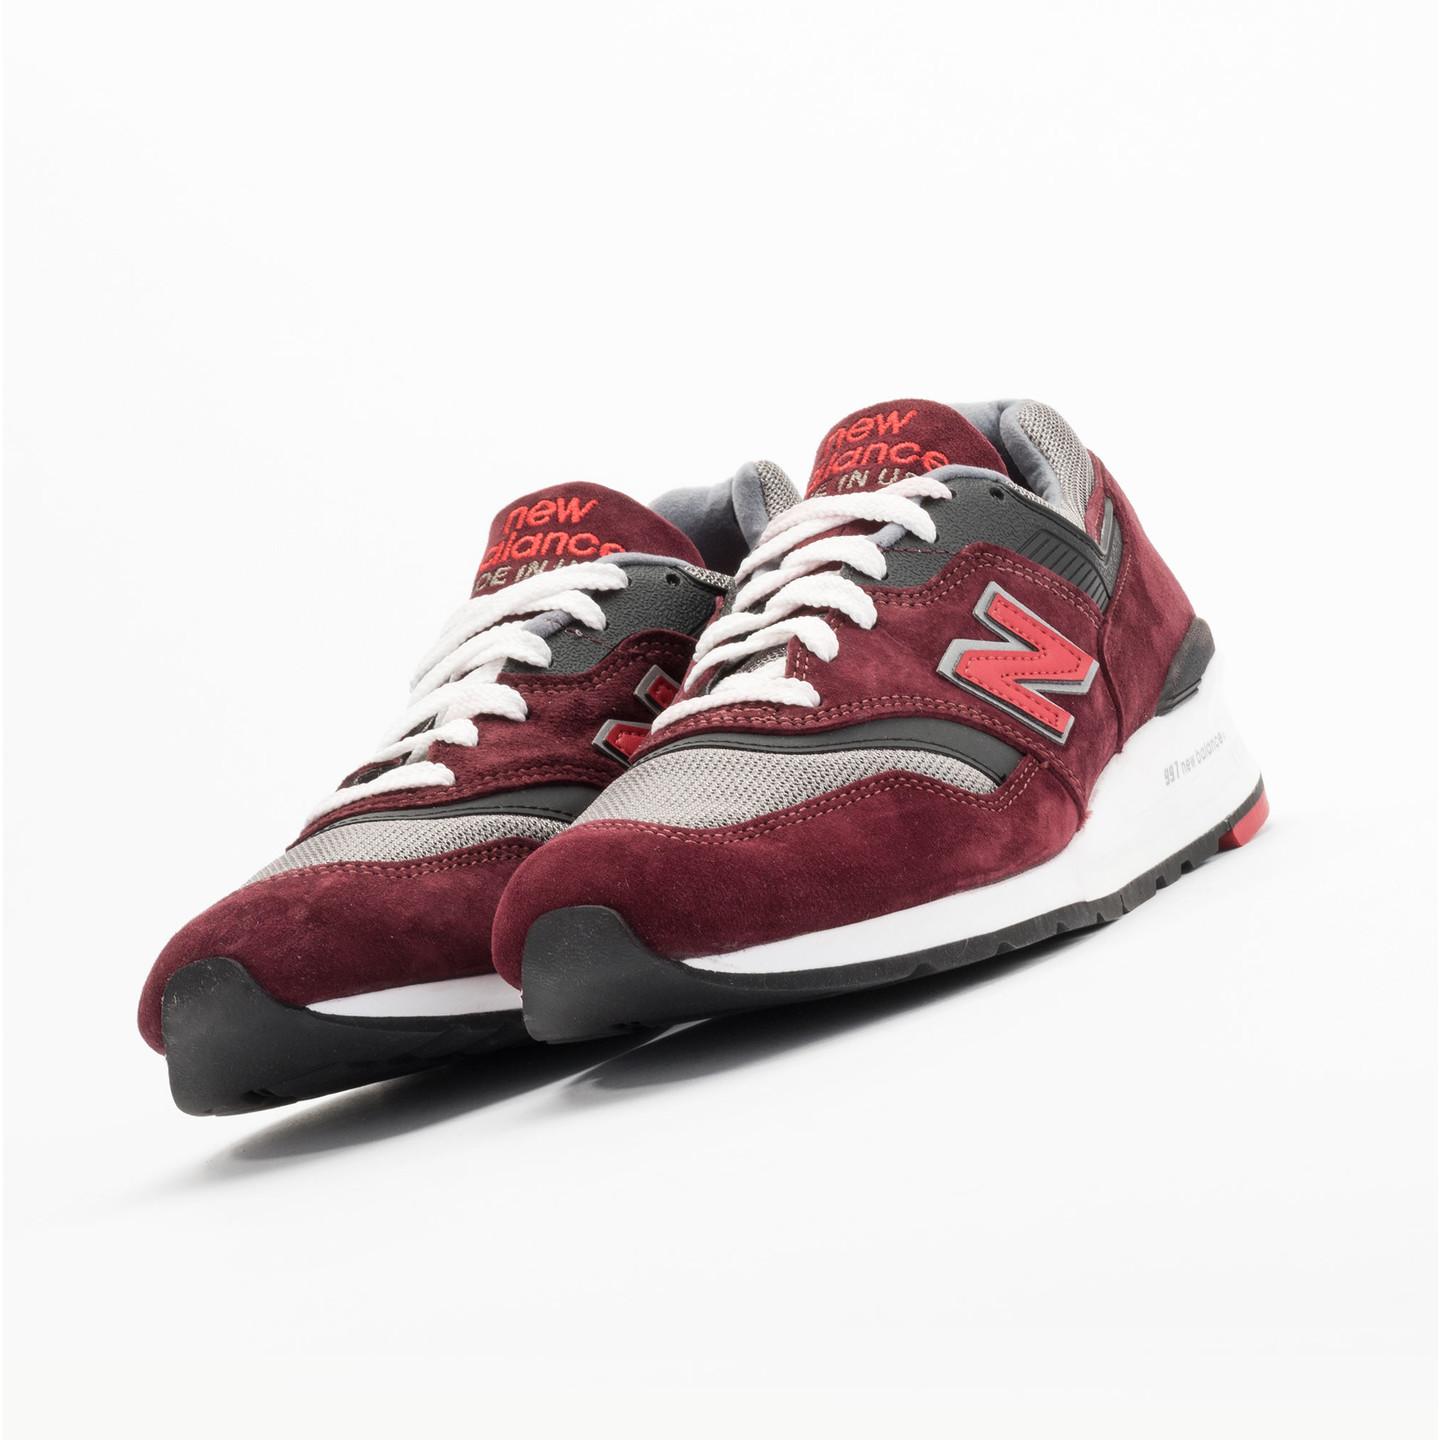 New Balance M997 CRG - Made in USA Brick Red / Black / Grey M997CRG-46.5